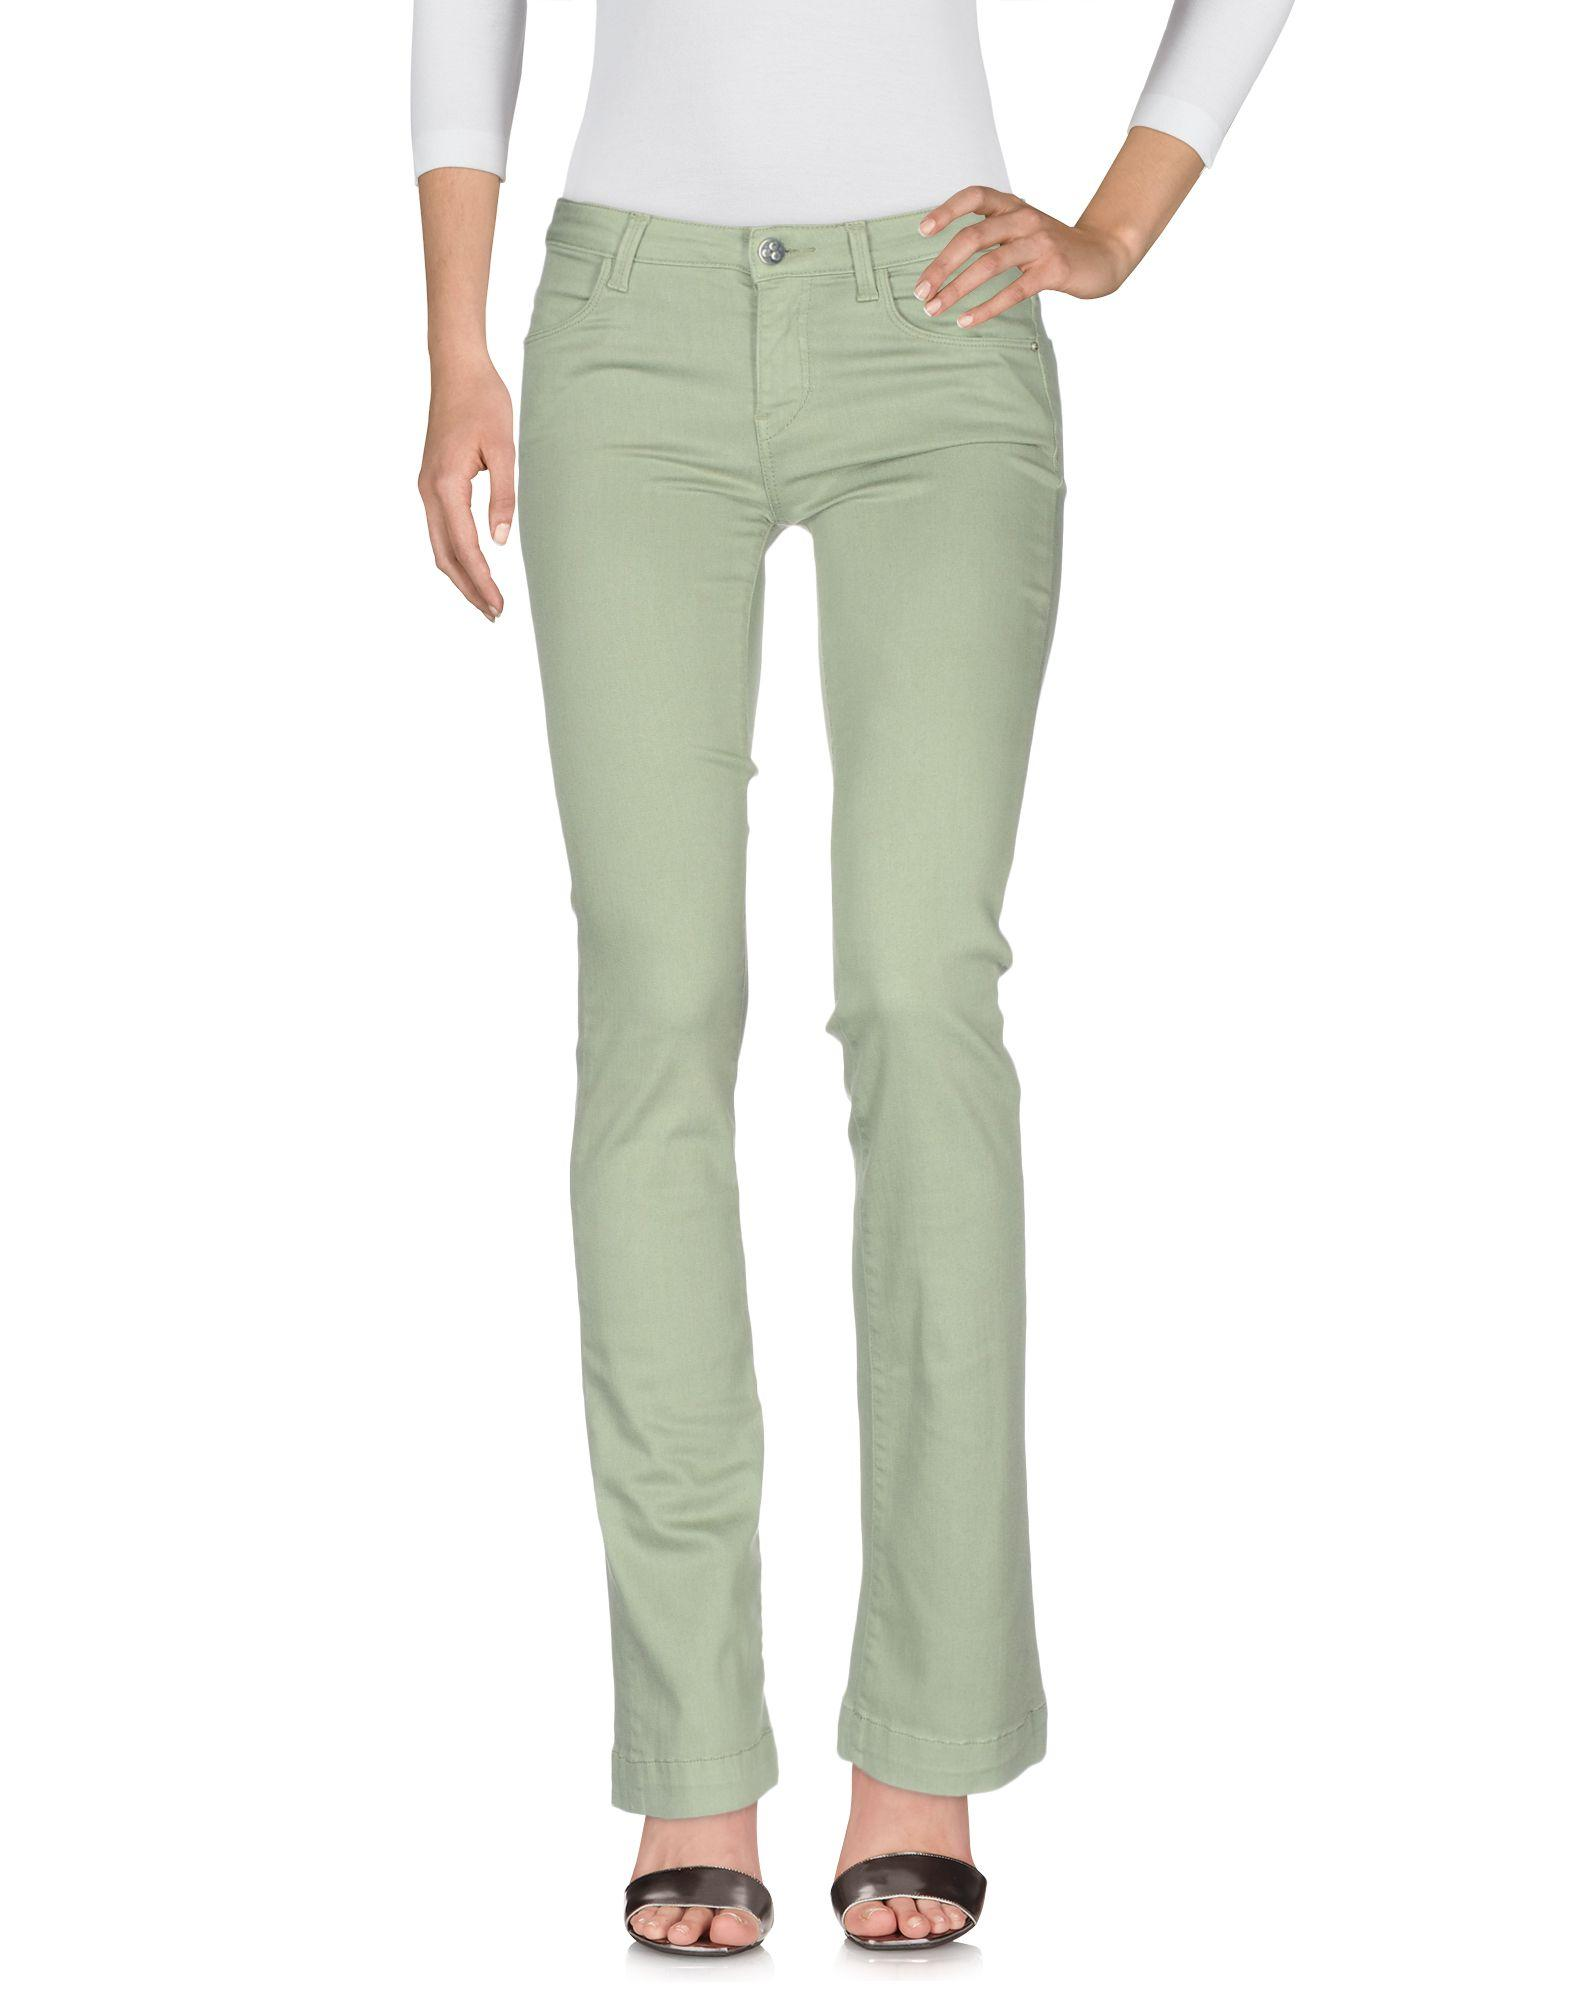 on sale d677b f7171 Jeans in Military Green